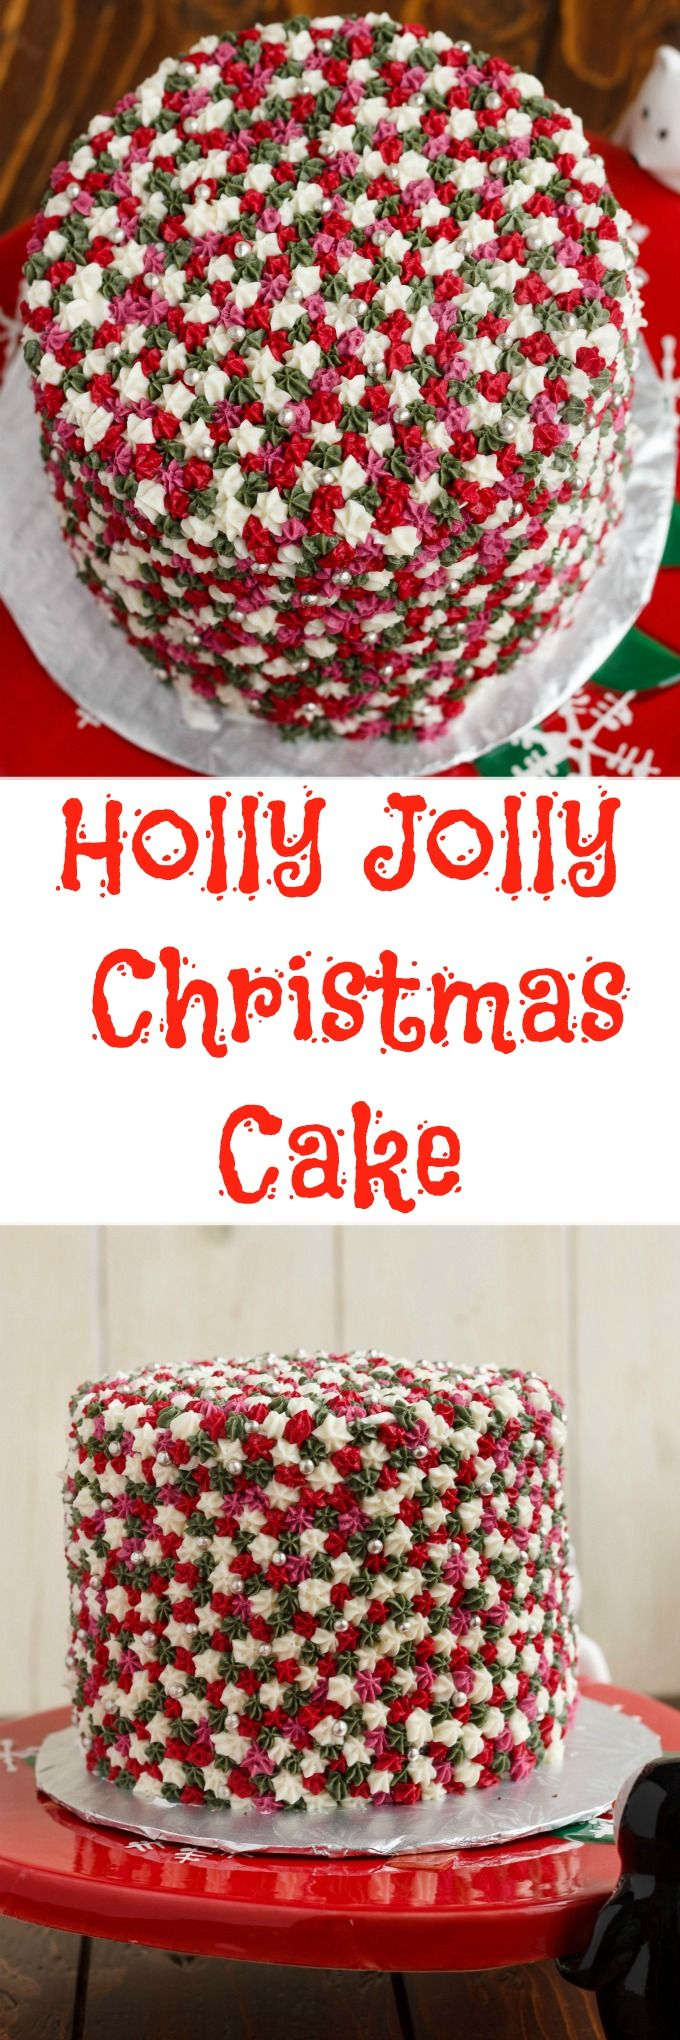 Easy Star Tip Christmas Cake Decorating Idea – Holly Jolly Christmas